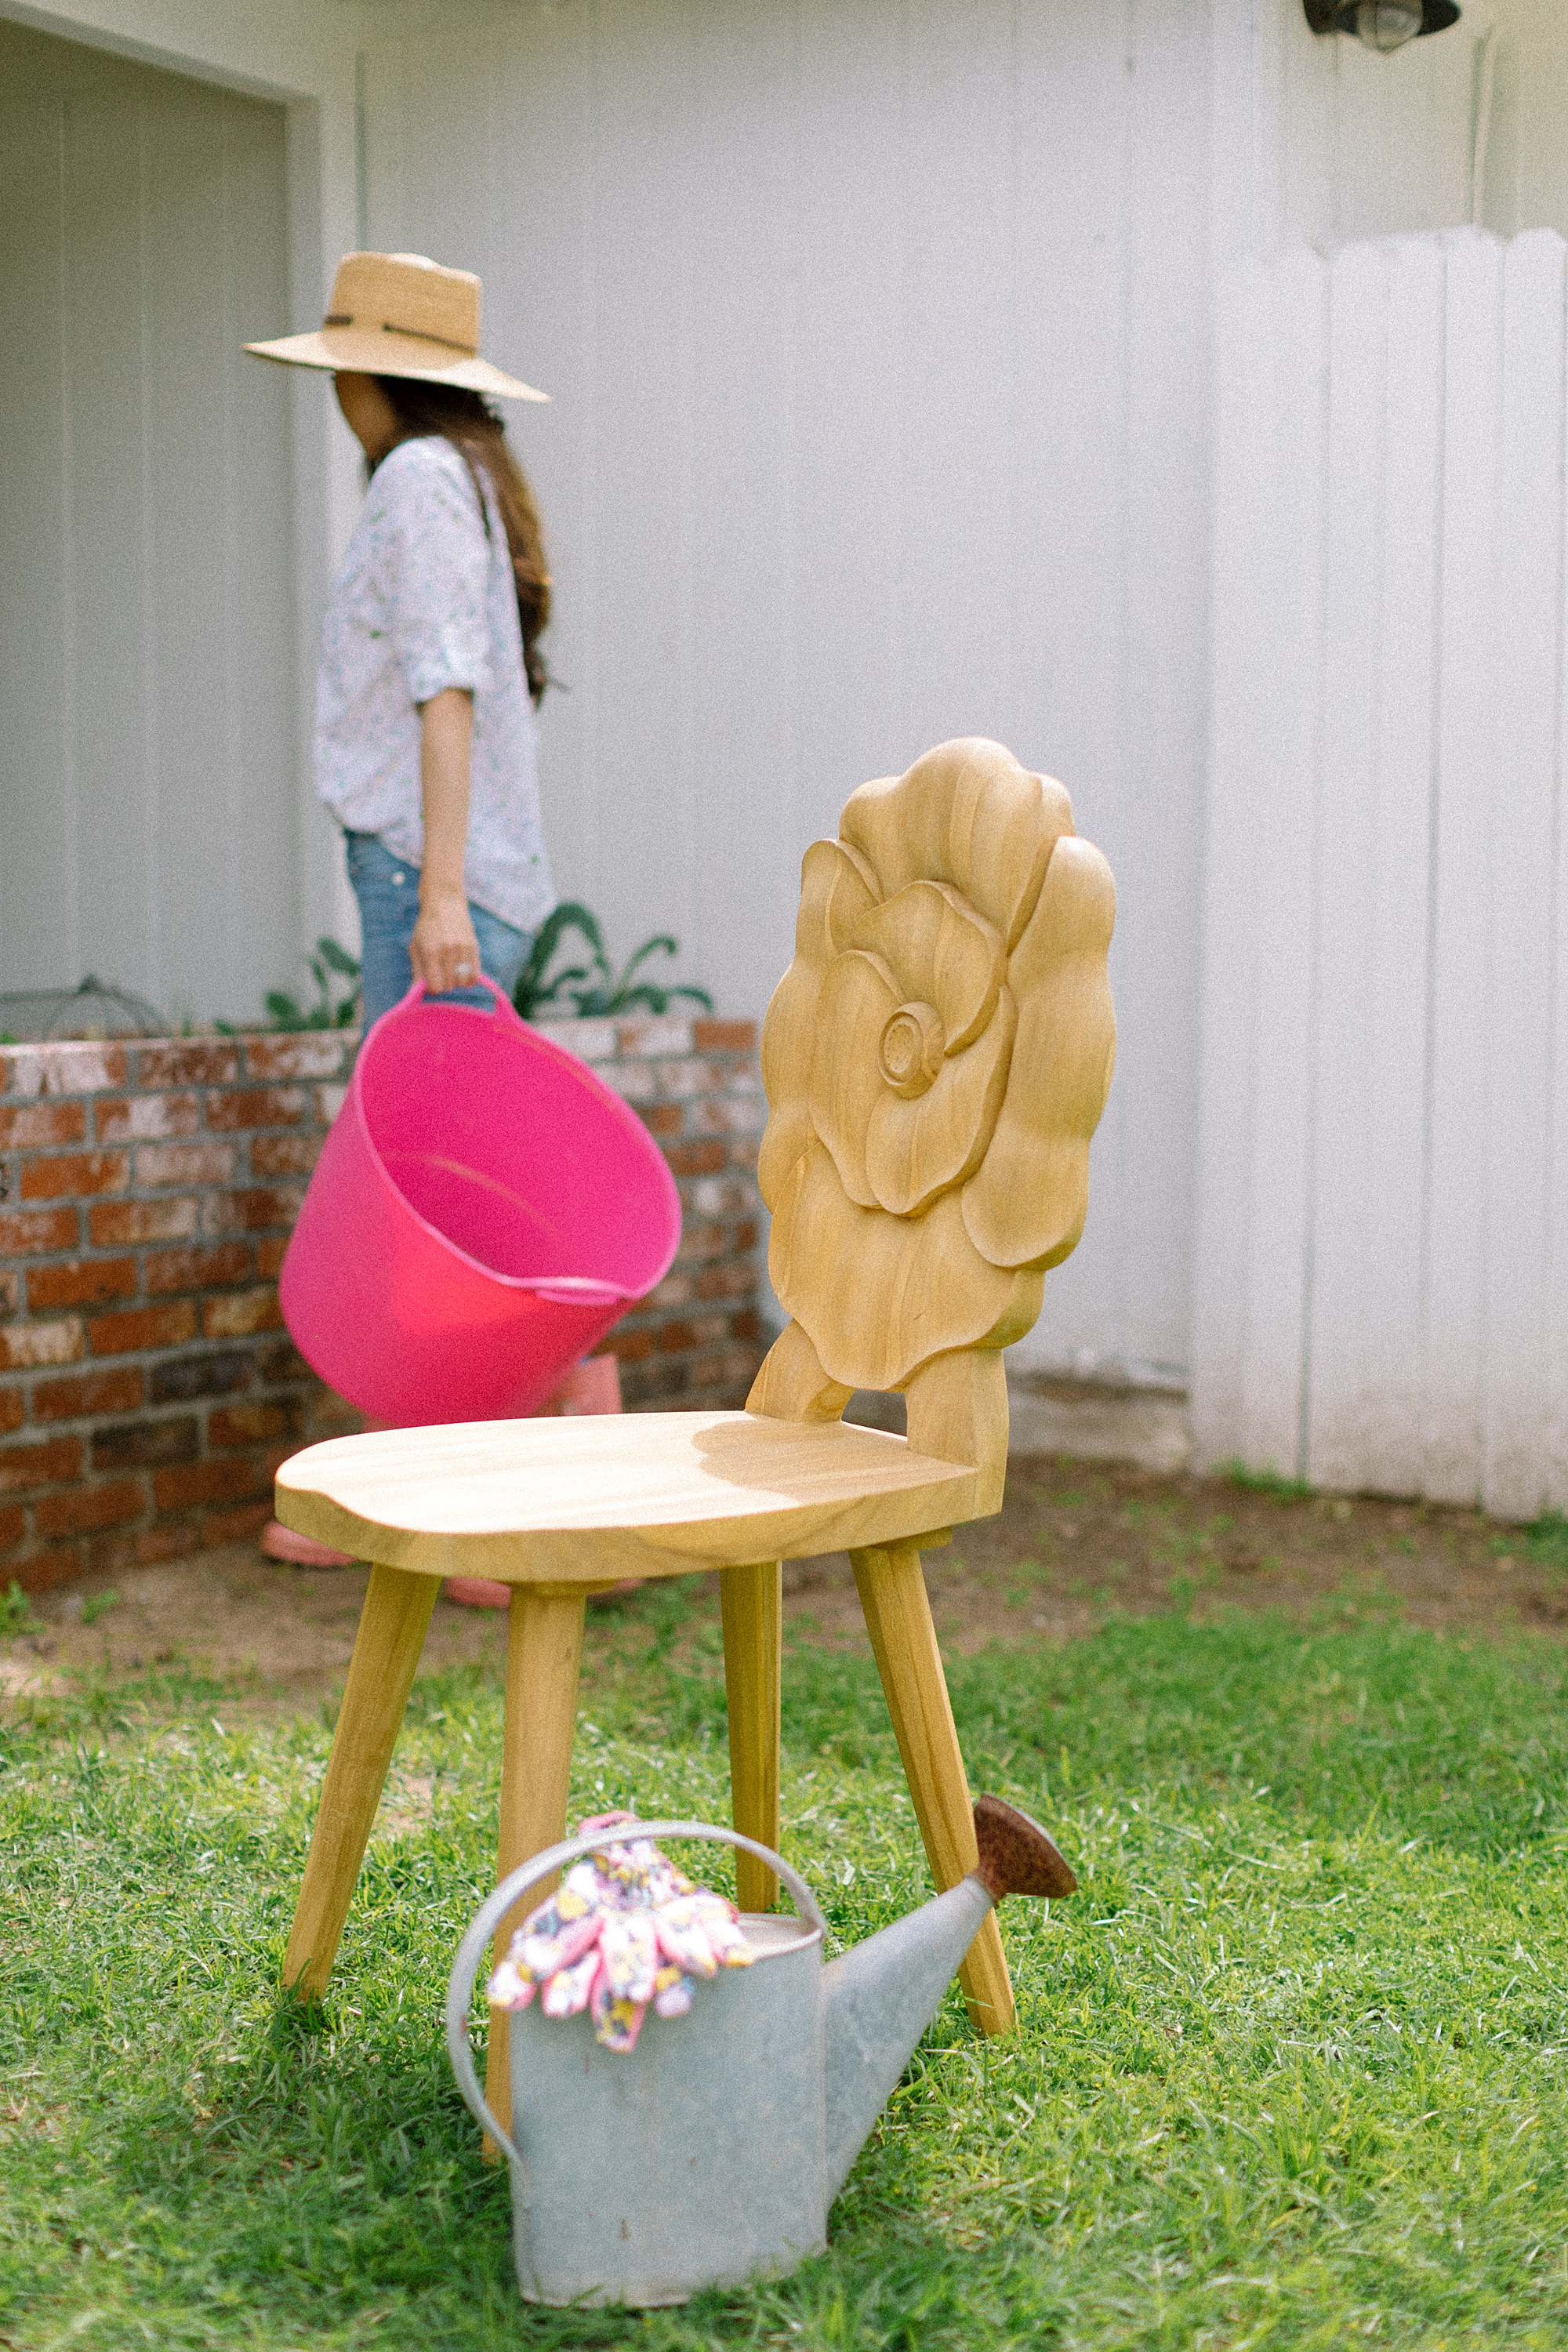 rose popup flower teak chair